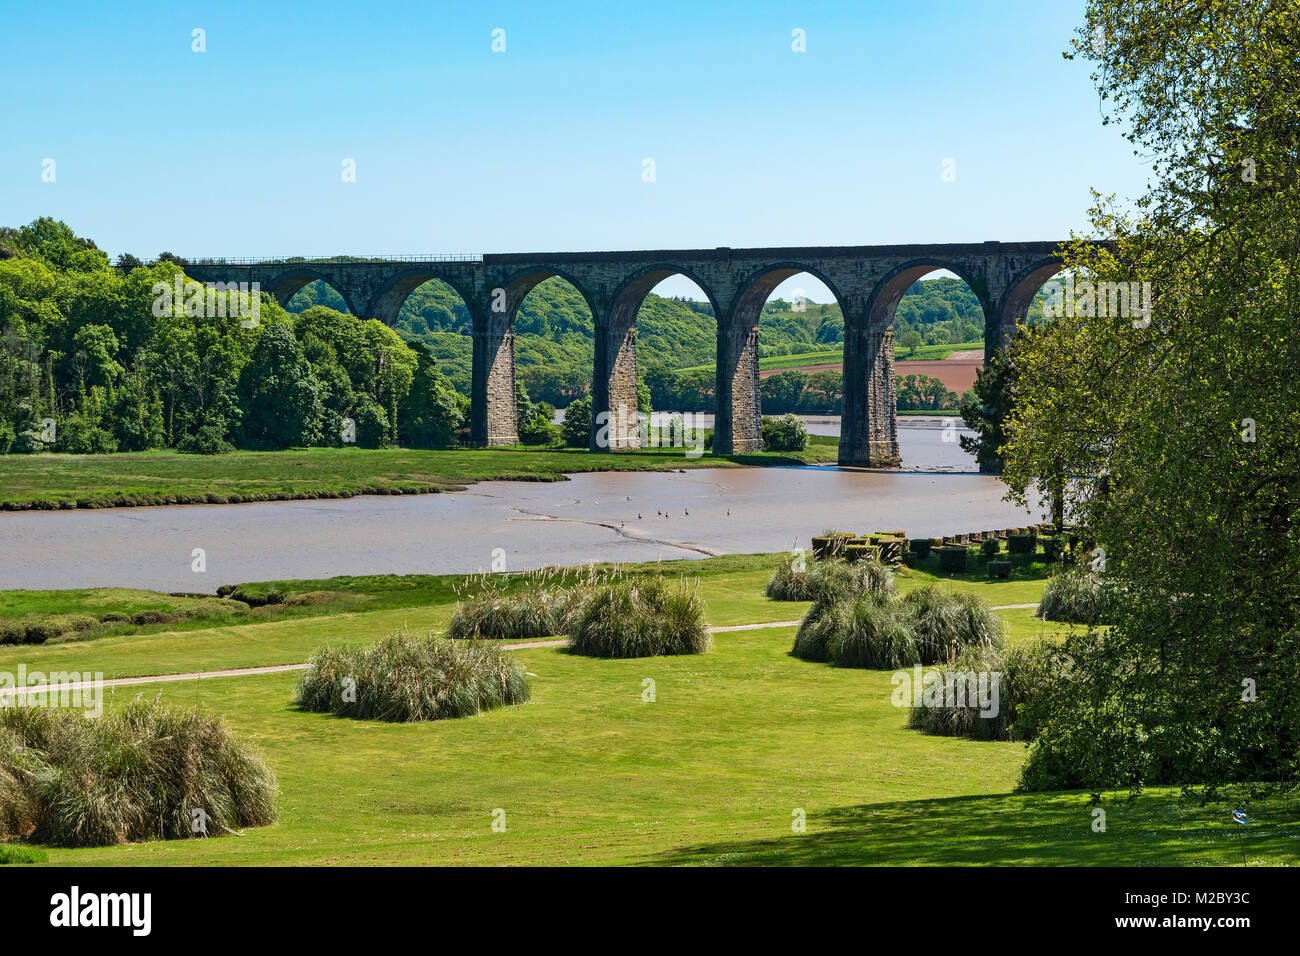 st.germans viaduct that takes the trains from cornwall to devon over the river tiddy viewed from the port eliot - Stock Image